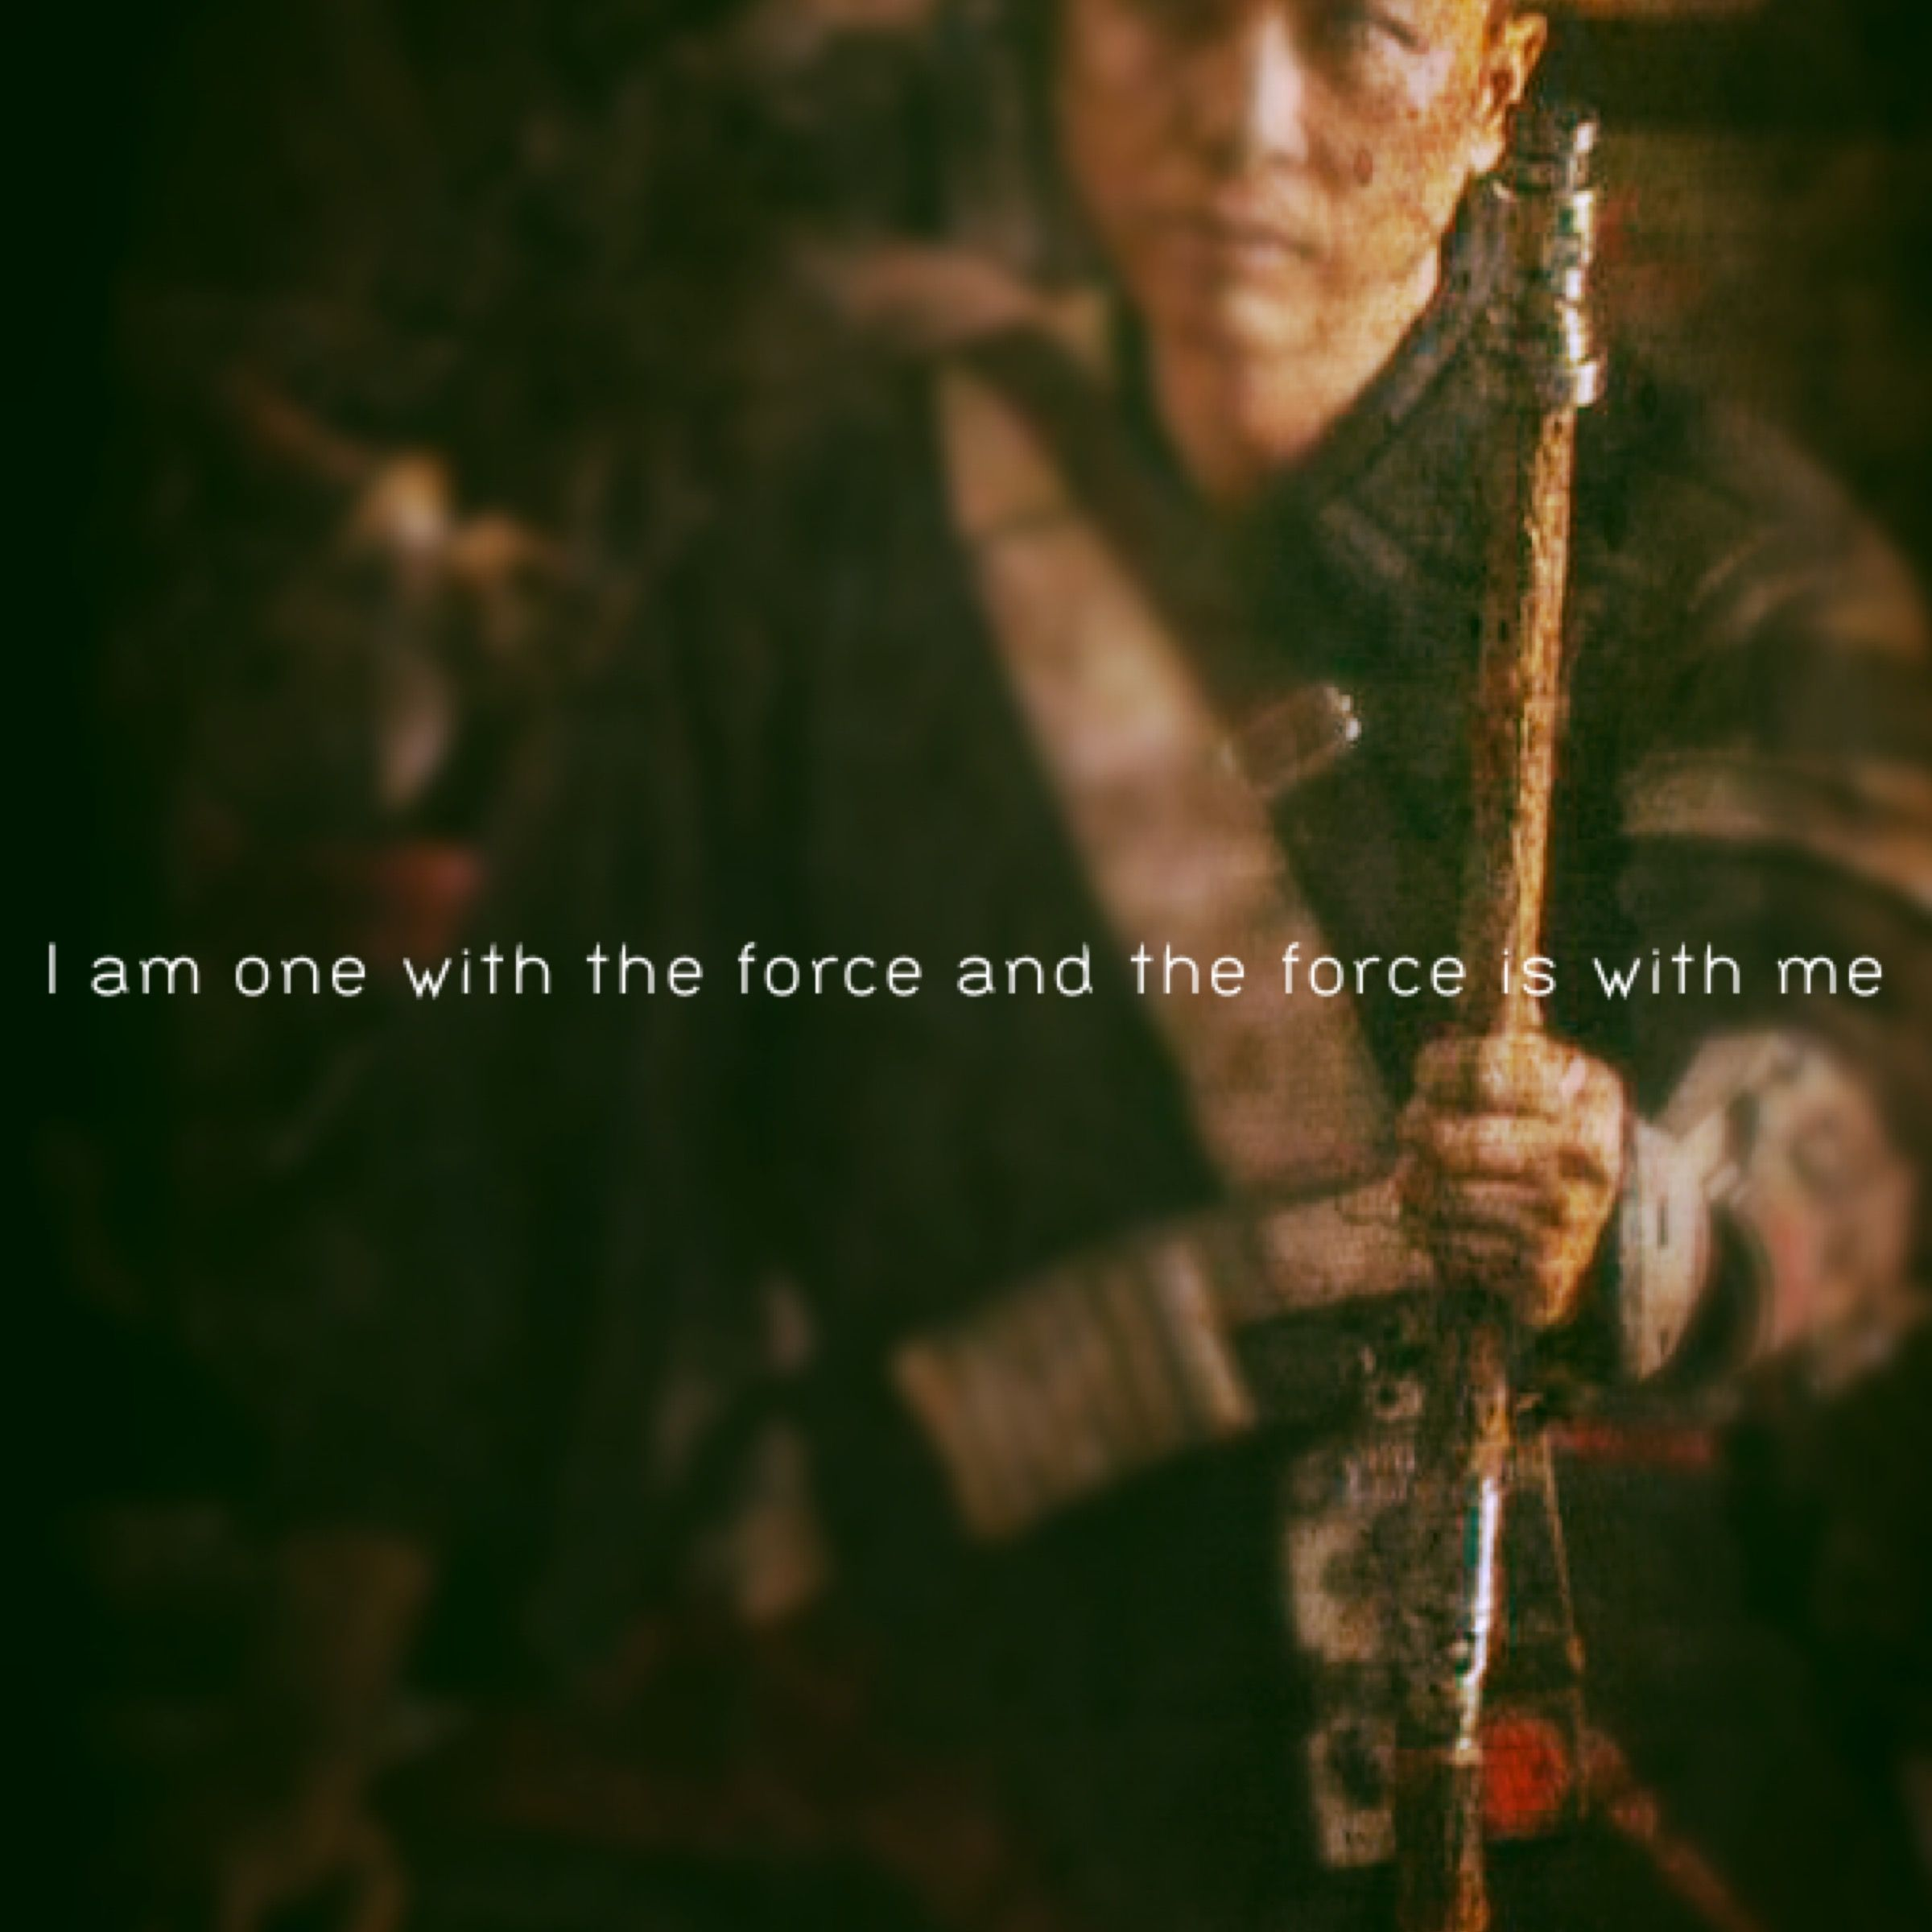 Rogue One-Chirrut Imwe- I am one with the force and the force is with me